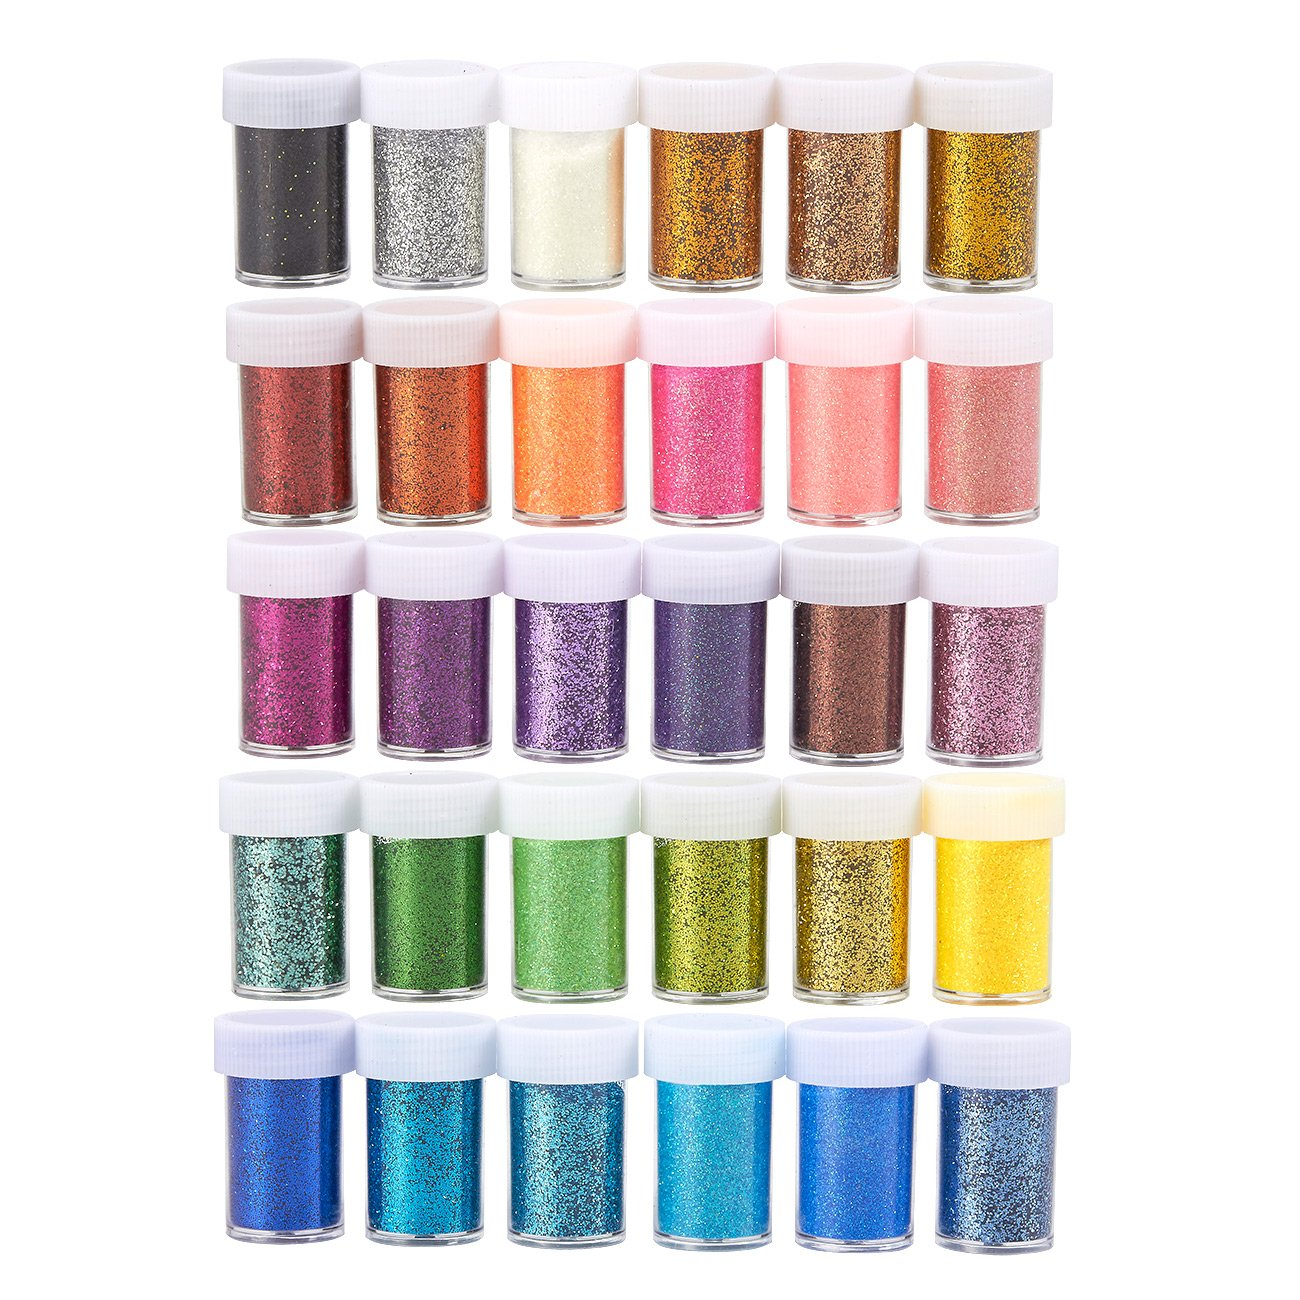 Glitter Shaker – 30-Pack Glitter Powder, Arts and Crafts Fine Glitter Dust for Kids Slime, Scrap-Booking, Body, Nails, Holiday Party Supplies, Non-Toxic, Assorted Colors, 20 ml Per Jar